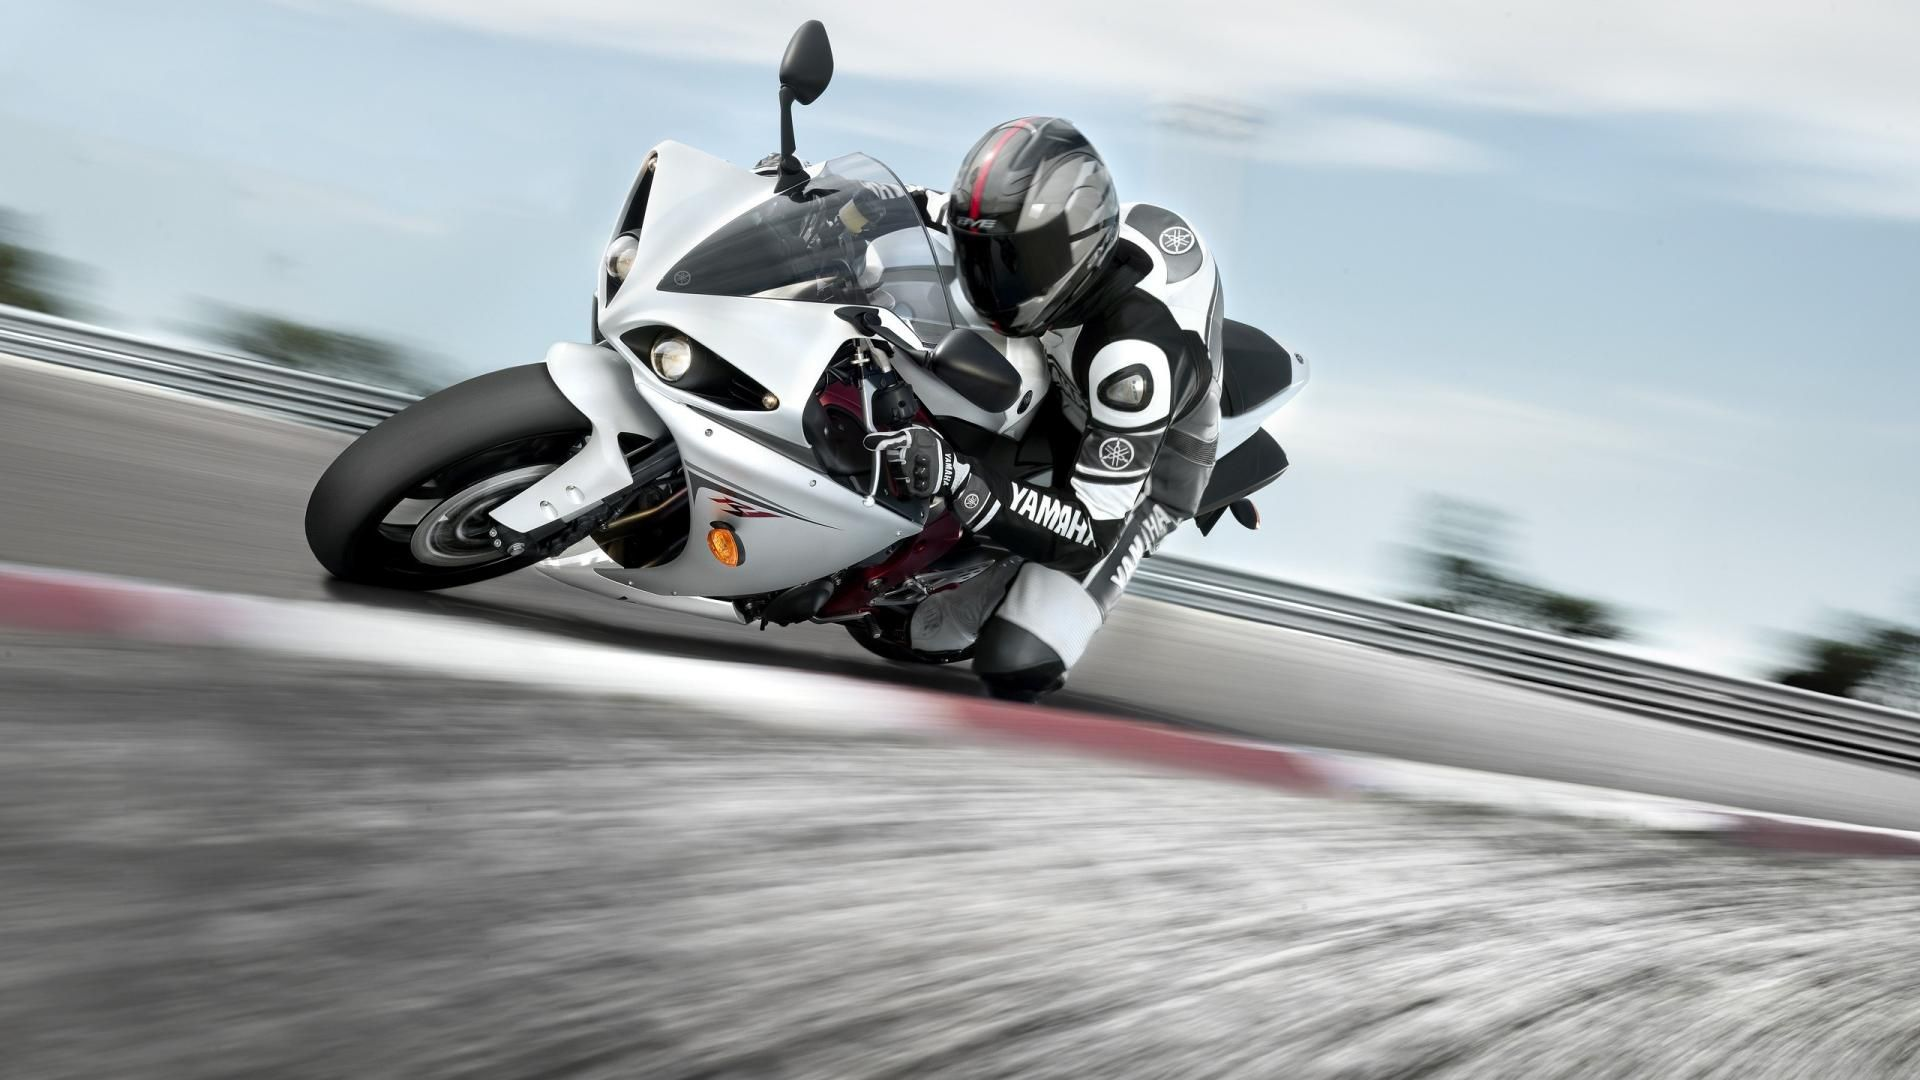 Motorcycle Backgrounds HD Wallpapers Download Motos 1920x1080